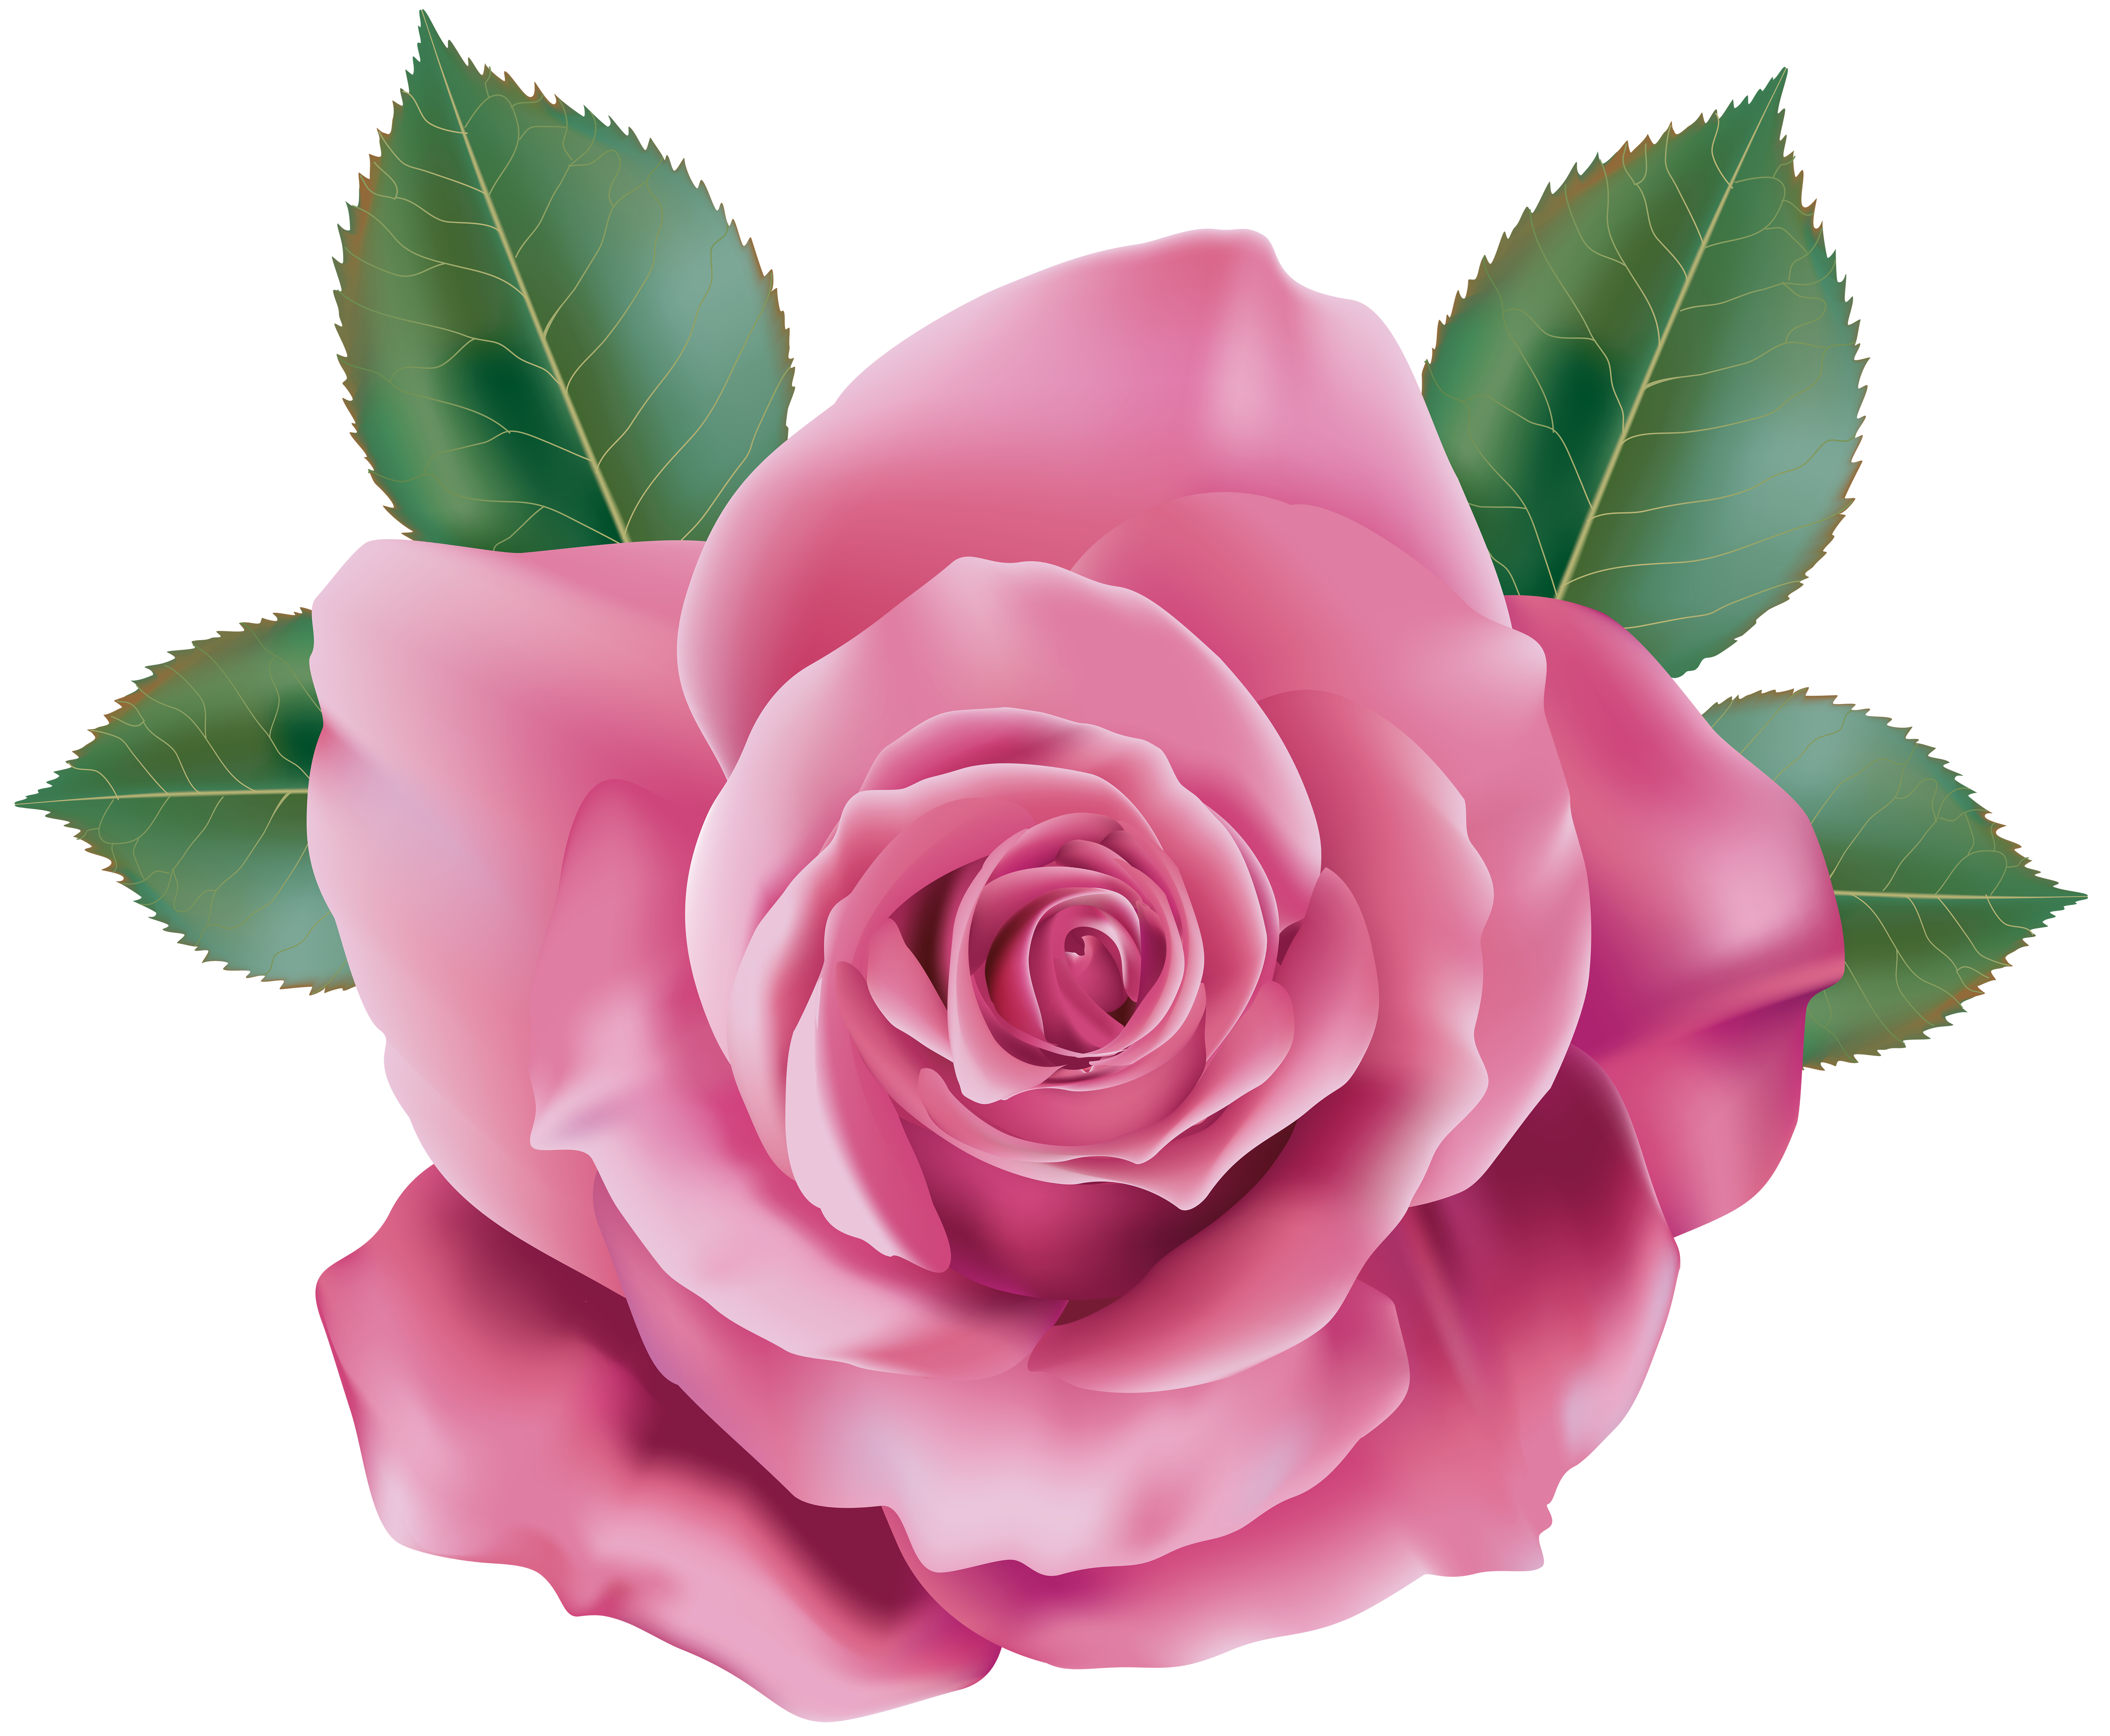 Pink transparent png clip. 3 clipart rose picture royalty free